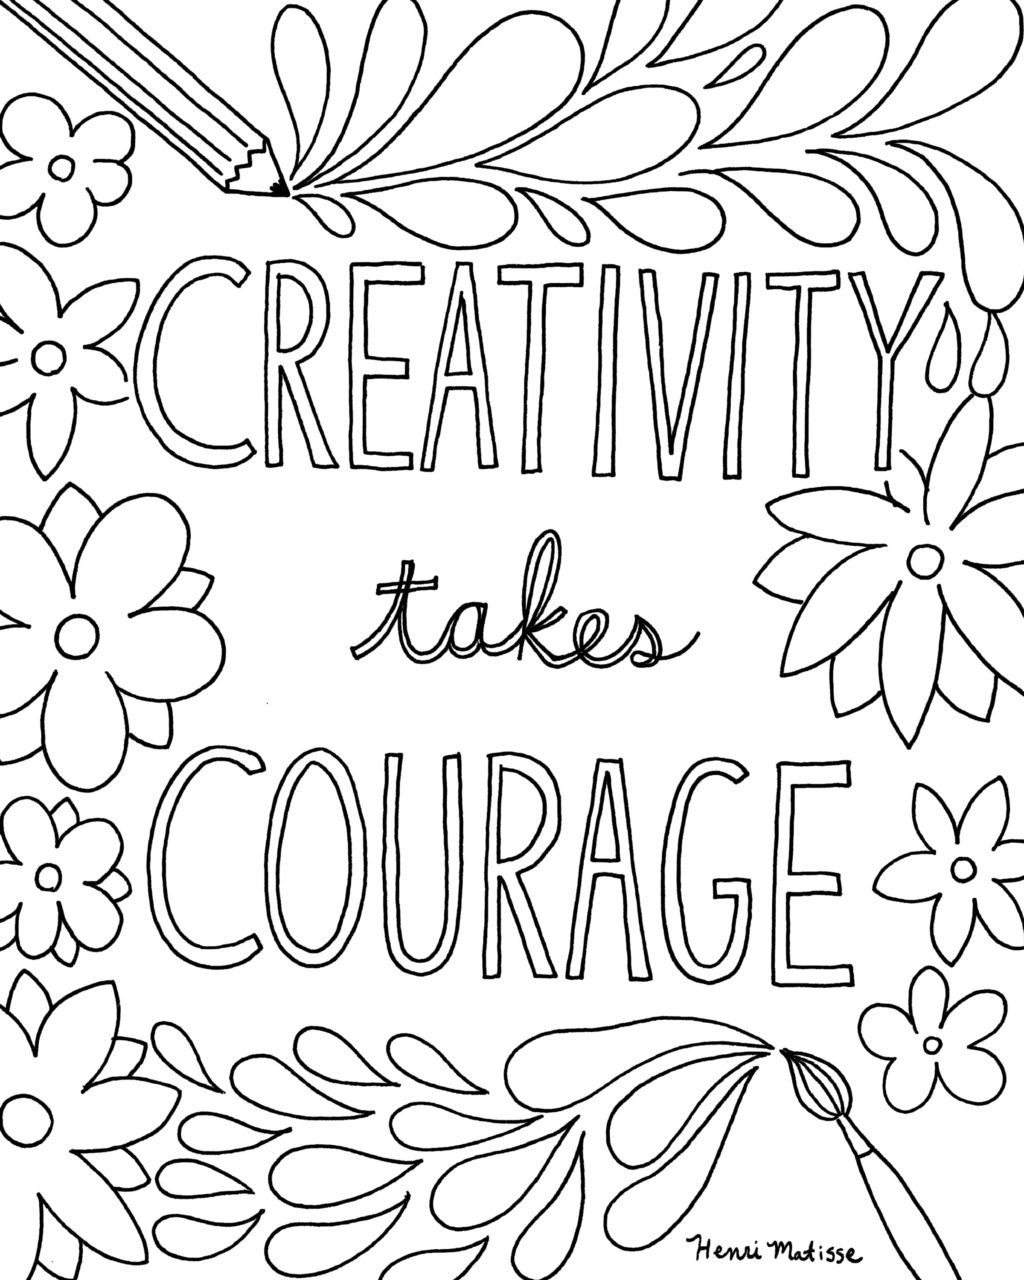 Coloring Book World ~ Free Printable Coloring Pages Disney Short - Free Printable Inspirational Coloring Pages